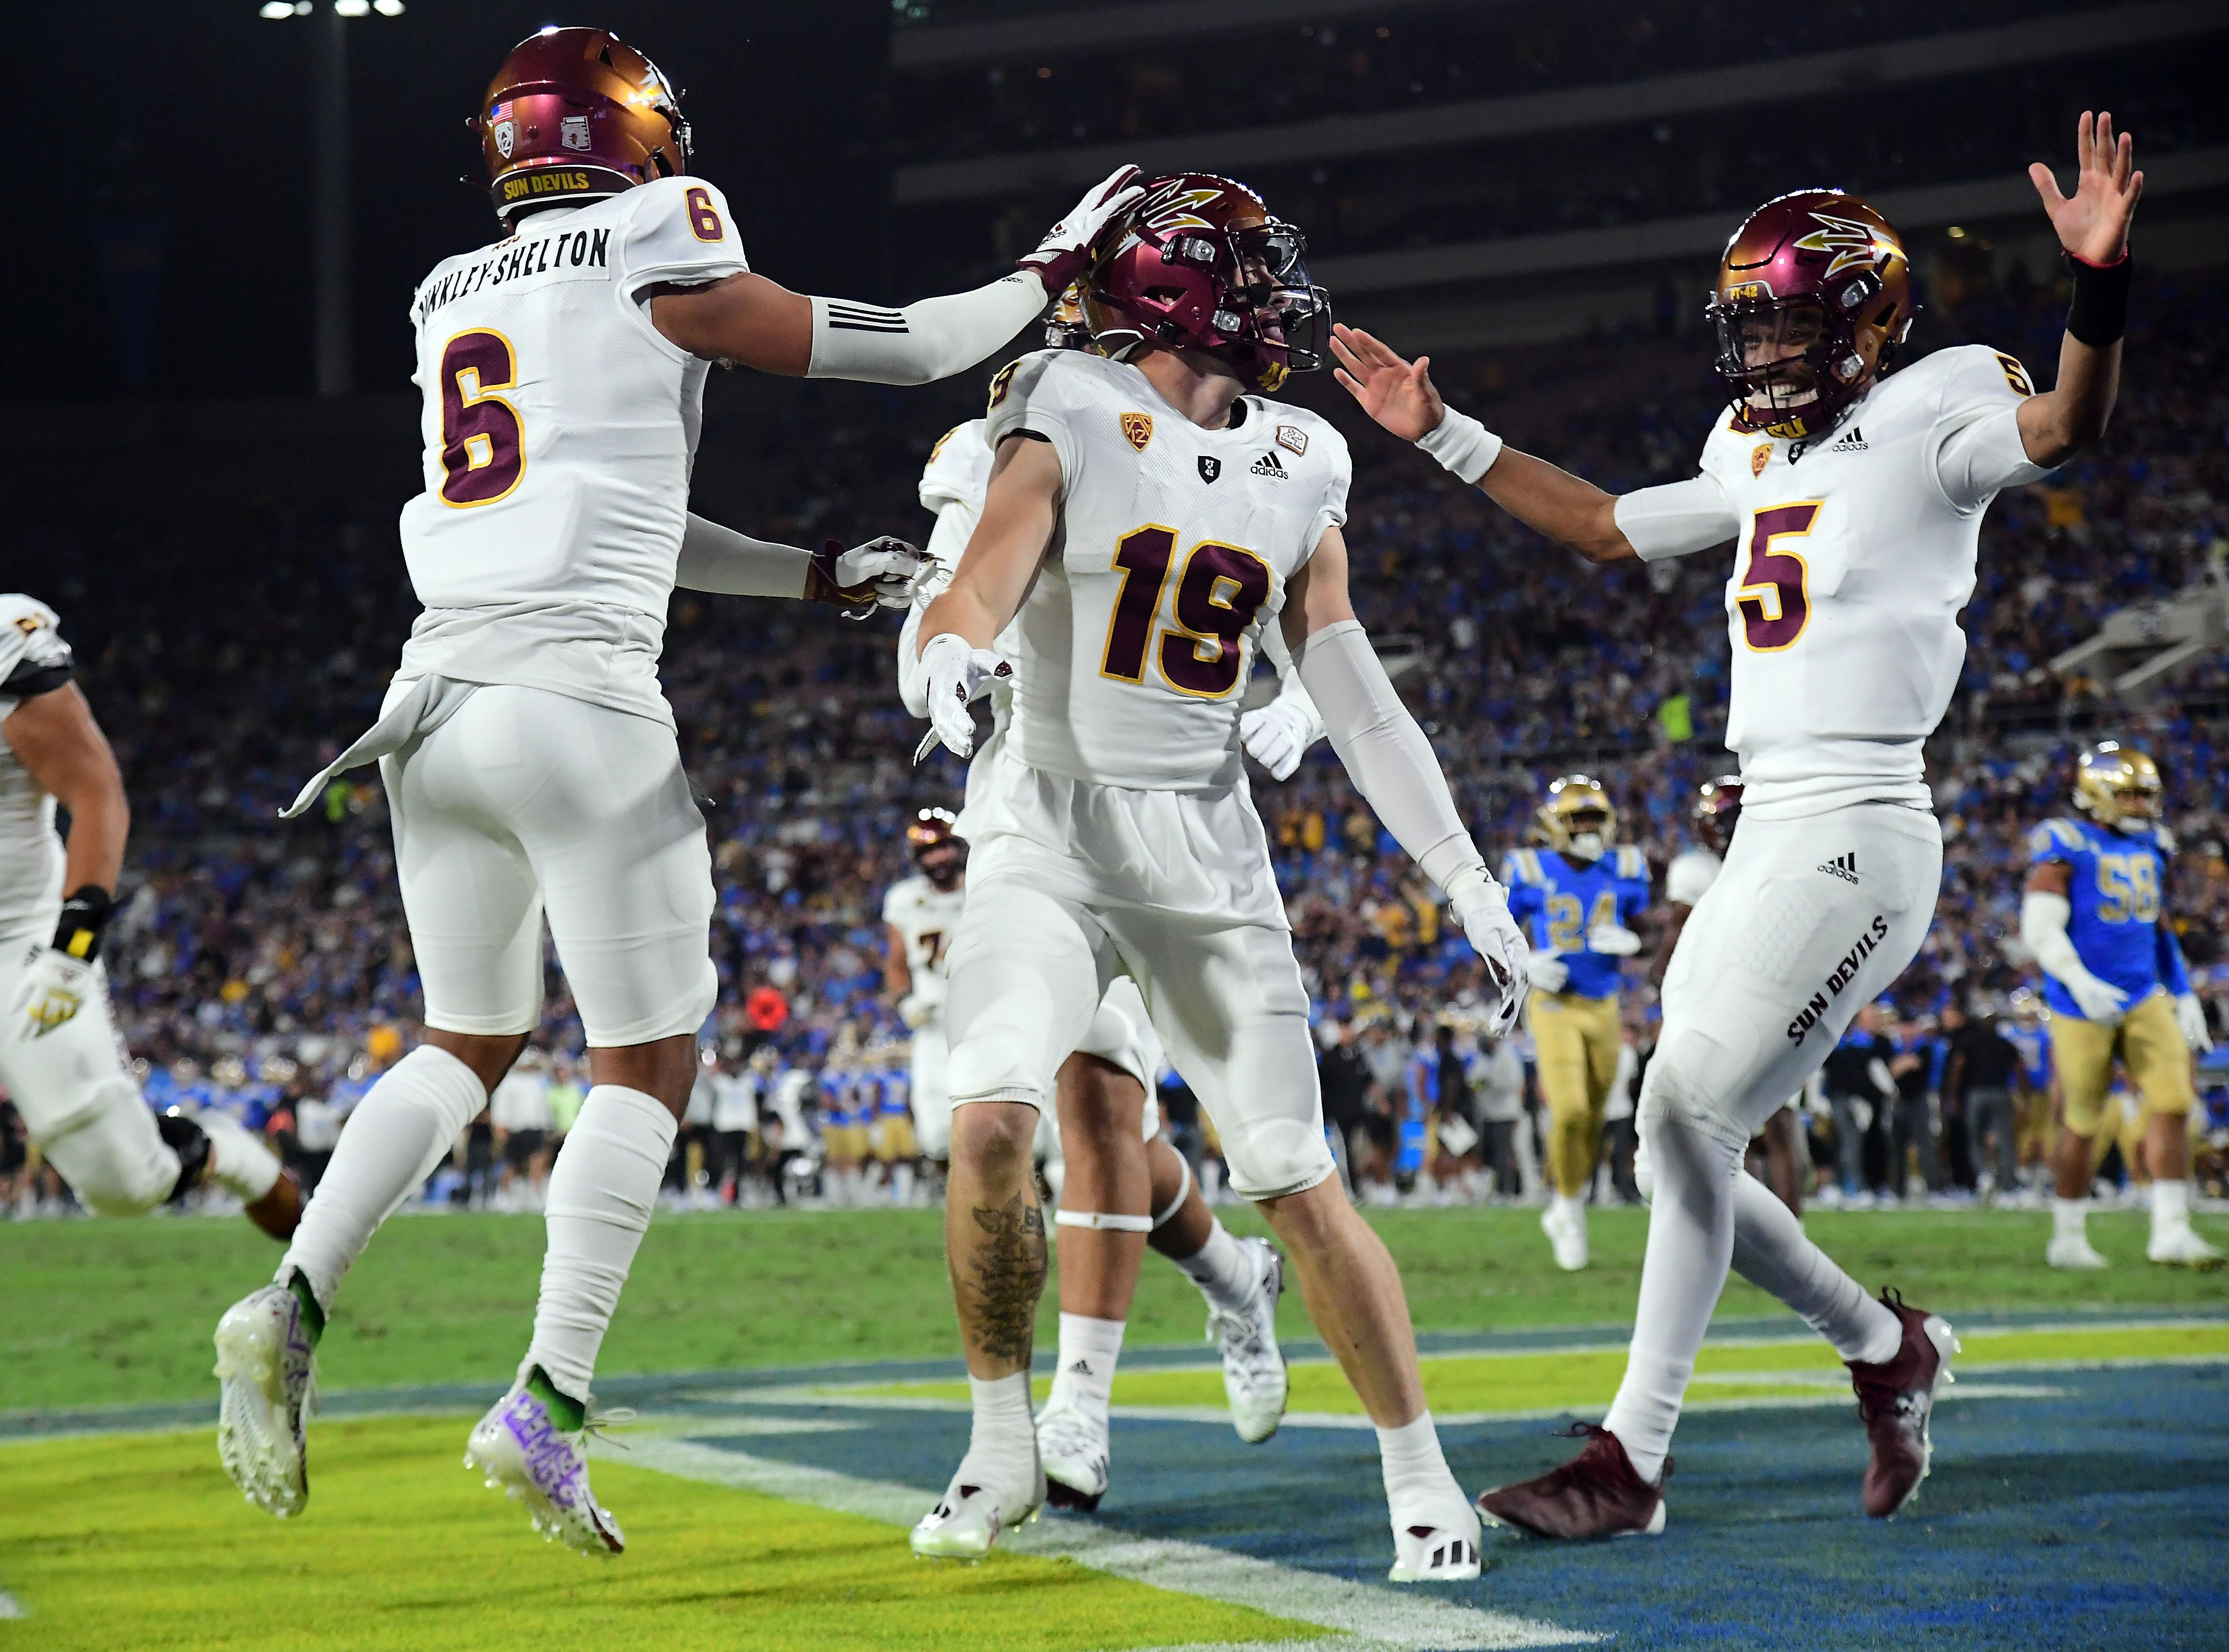 Local Ricky Pearsall emerging as key factor in explosive ASU offense